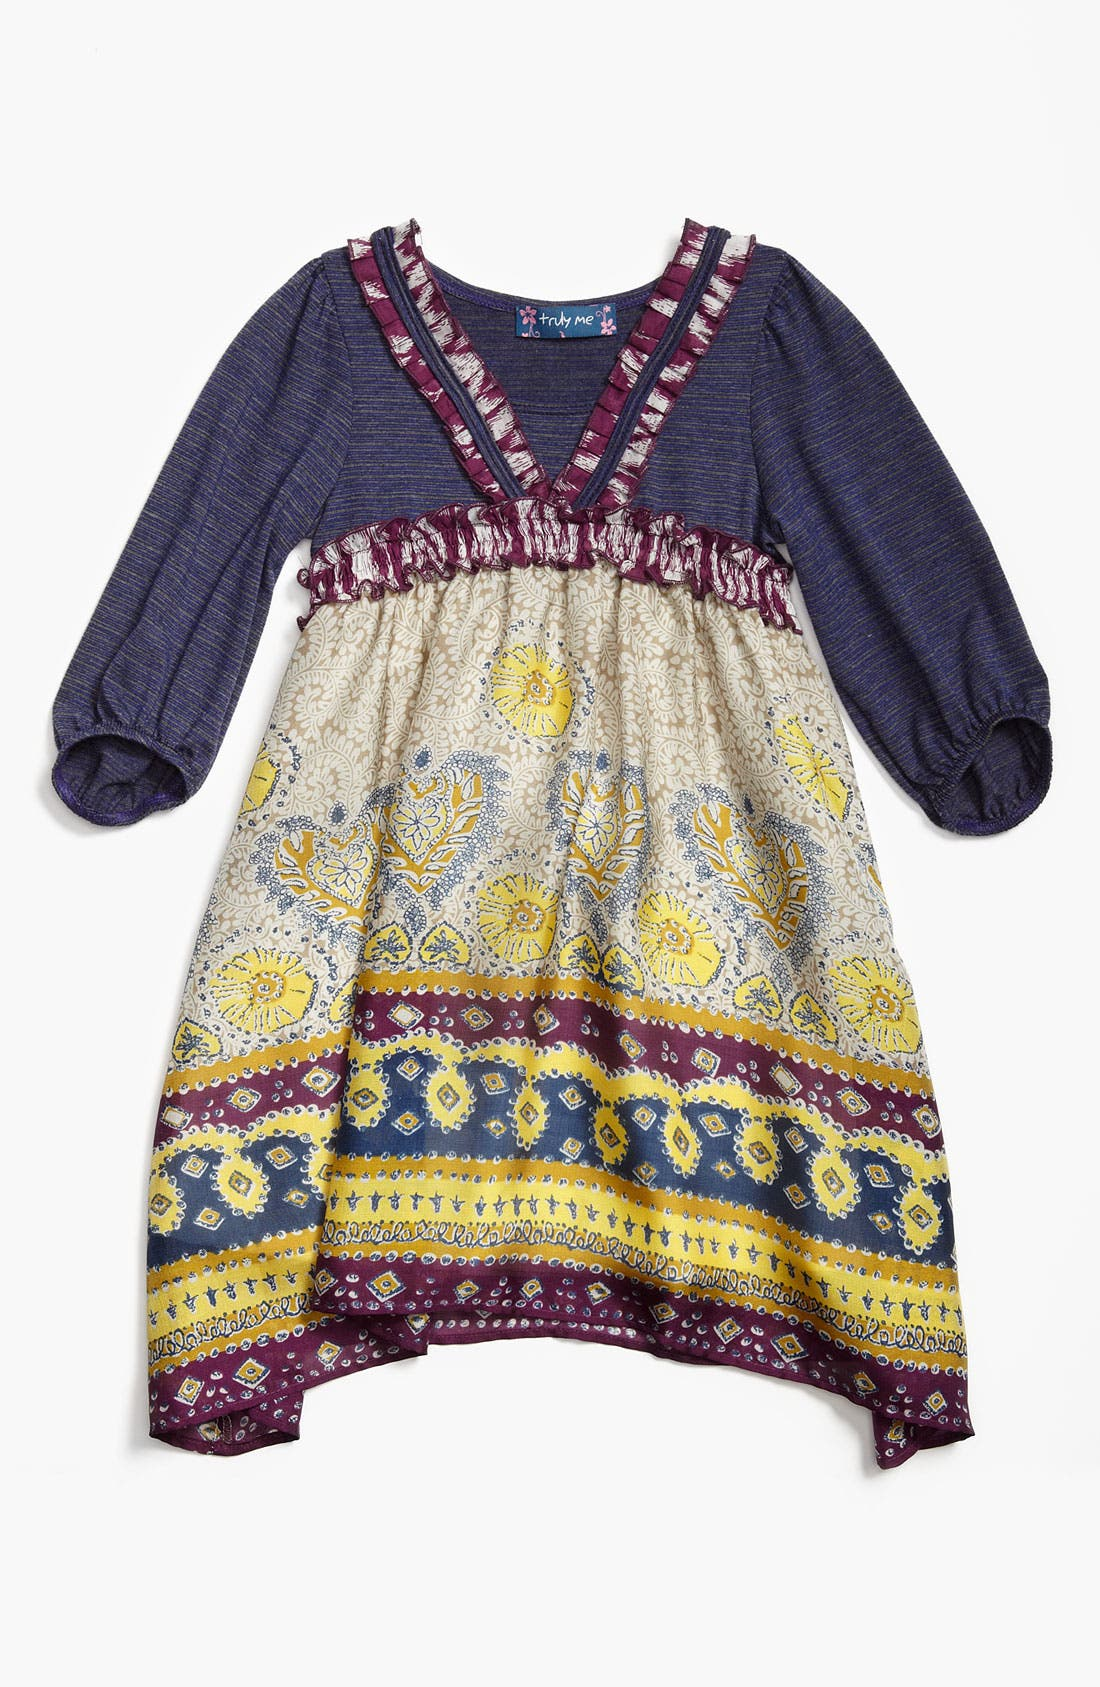 Alternate Image 1 Selected - Truly Me Knit Dress (Little Girls & Big Girls)